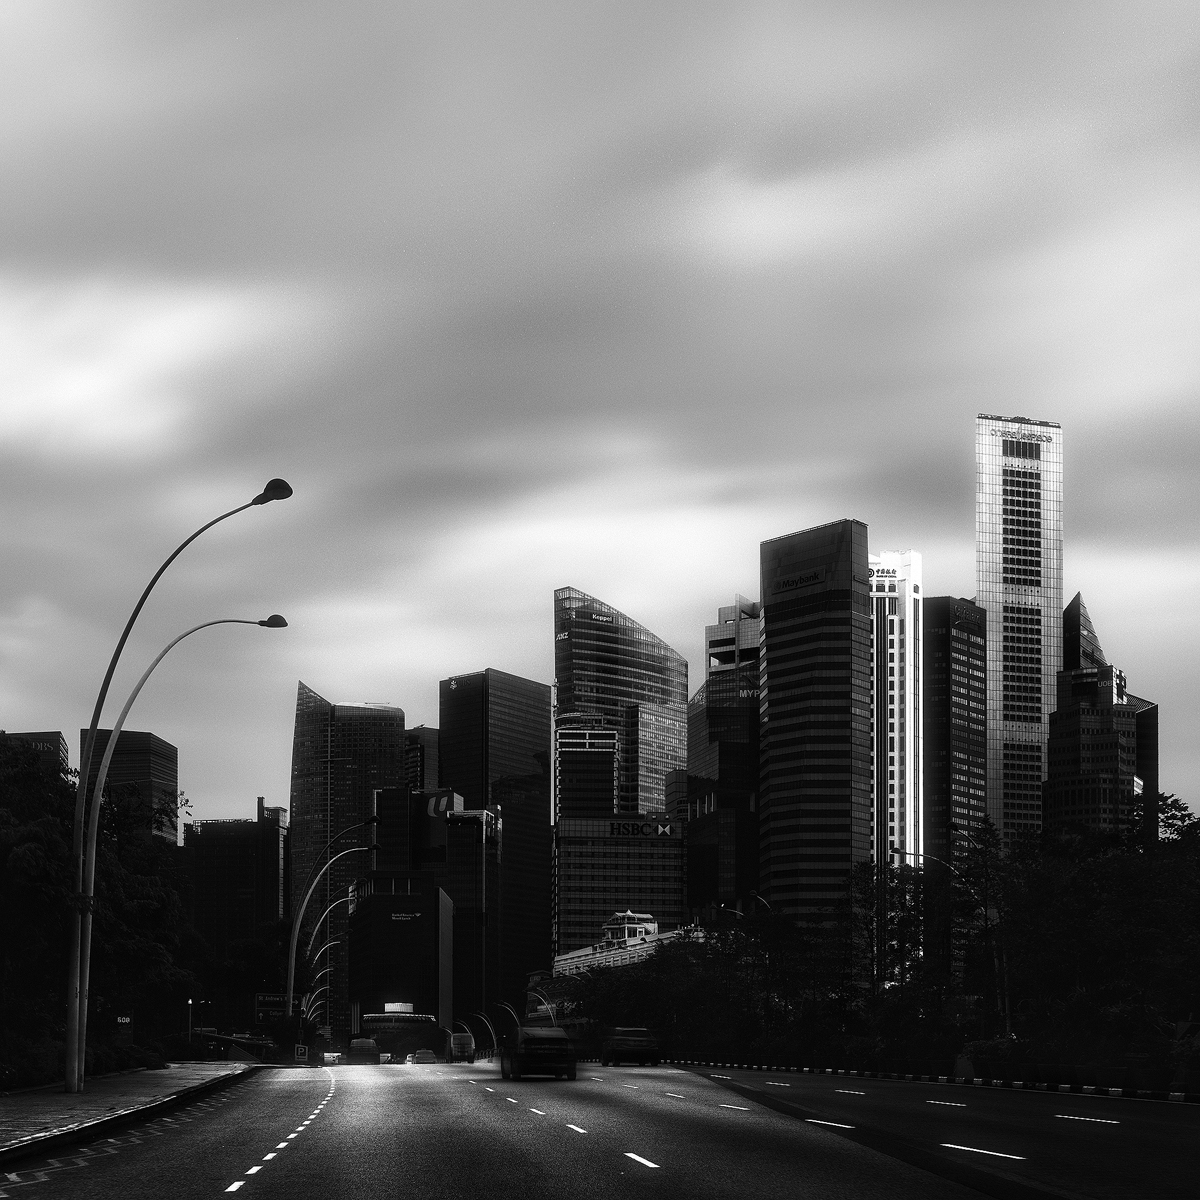 Vision Symphony III - Light and Shadows - Singapore Heights